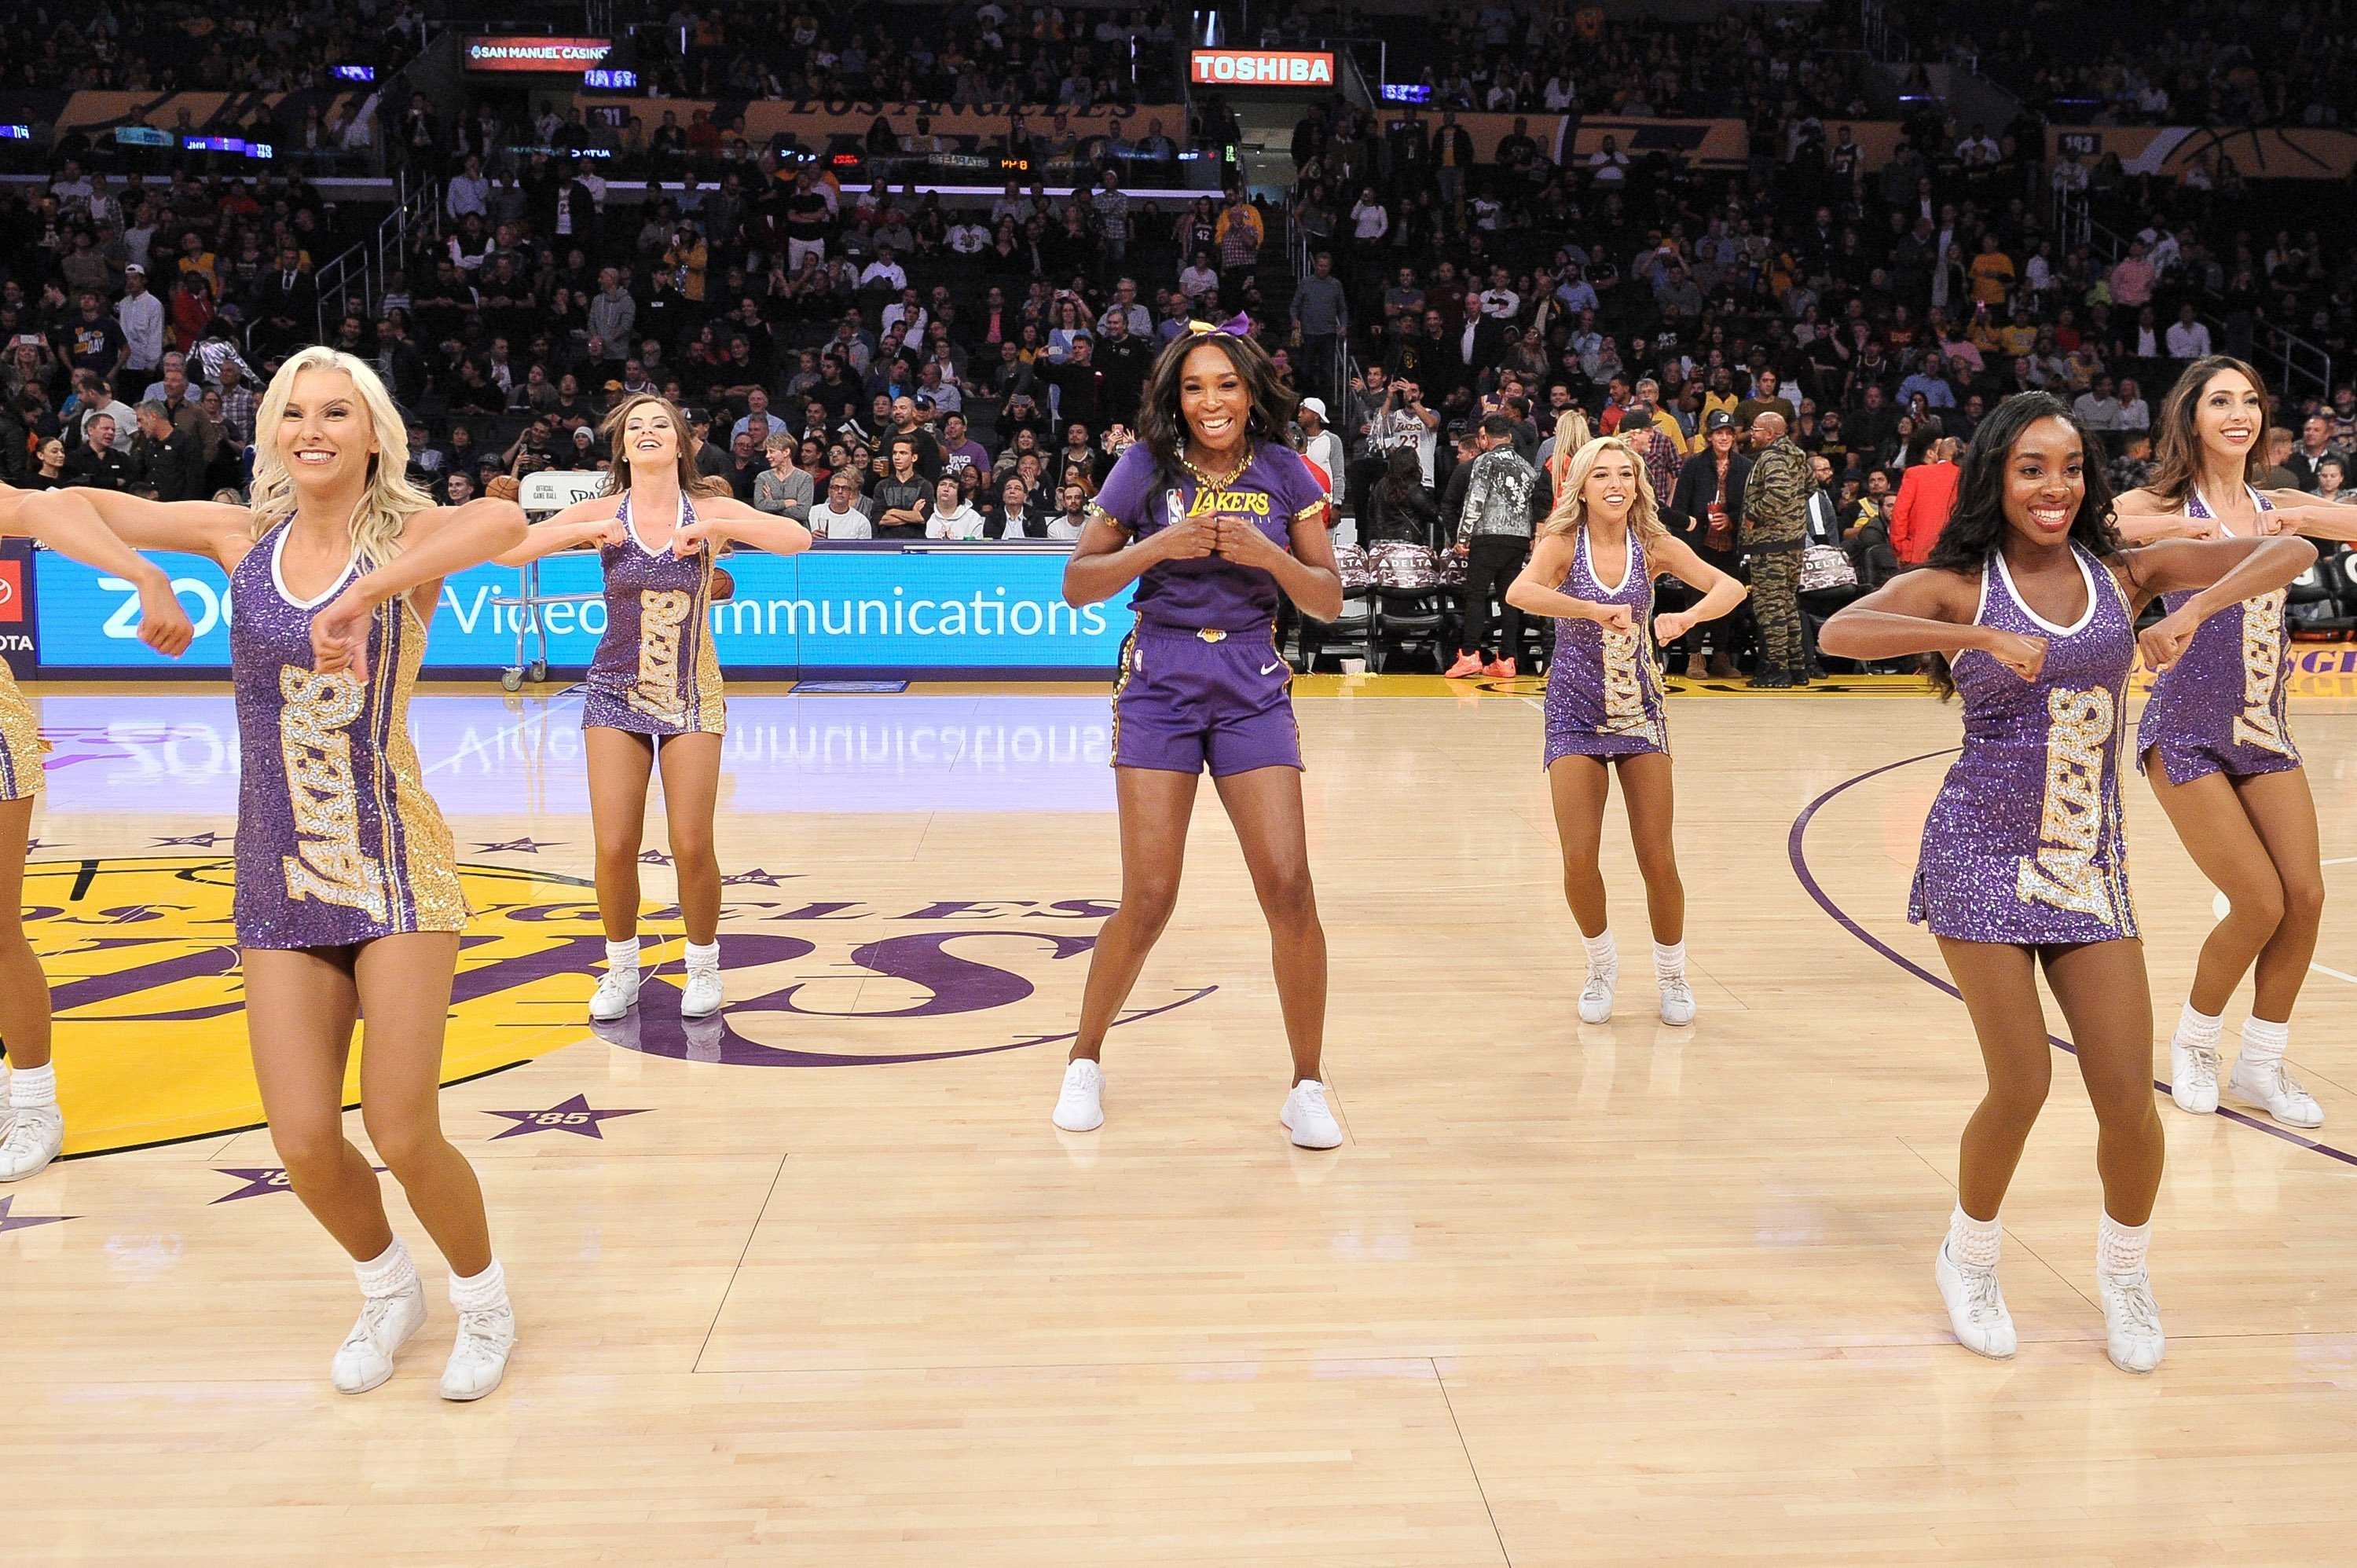 Venus Williams during halftime at a Lakers vs Oklahoma City Thunder Game at Staples Center on November 19, 2019 | Photo: GettyImages